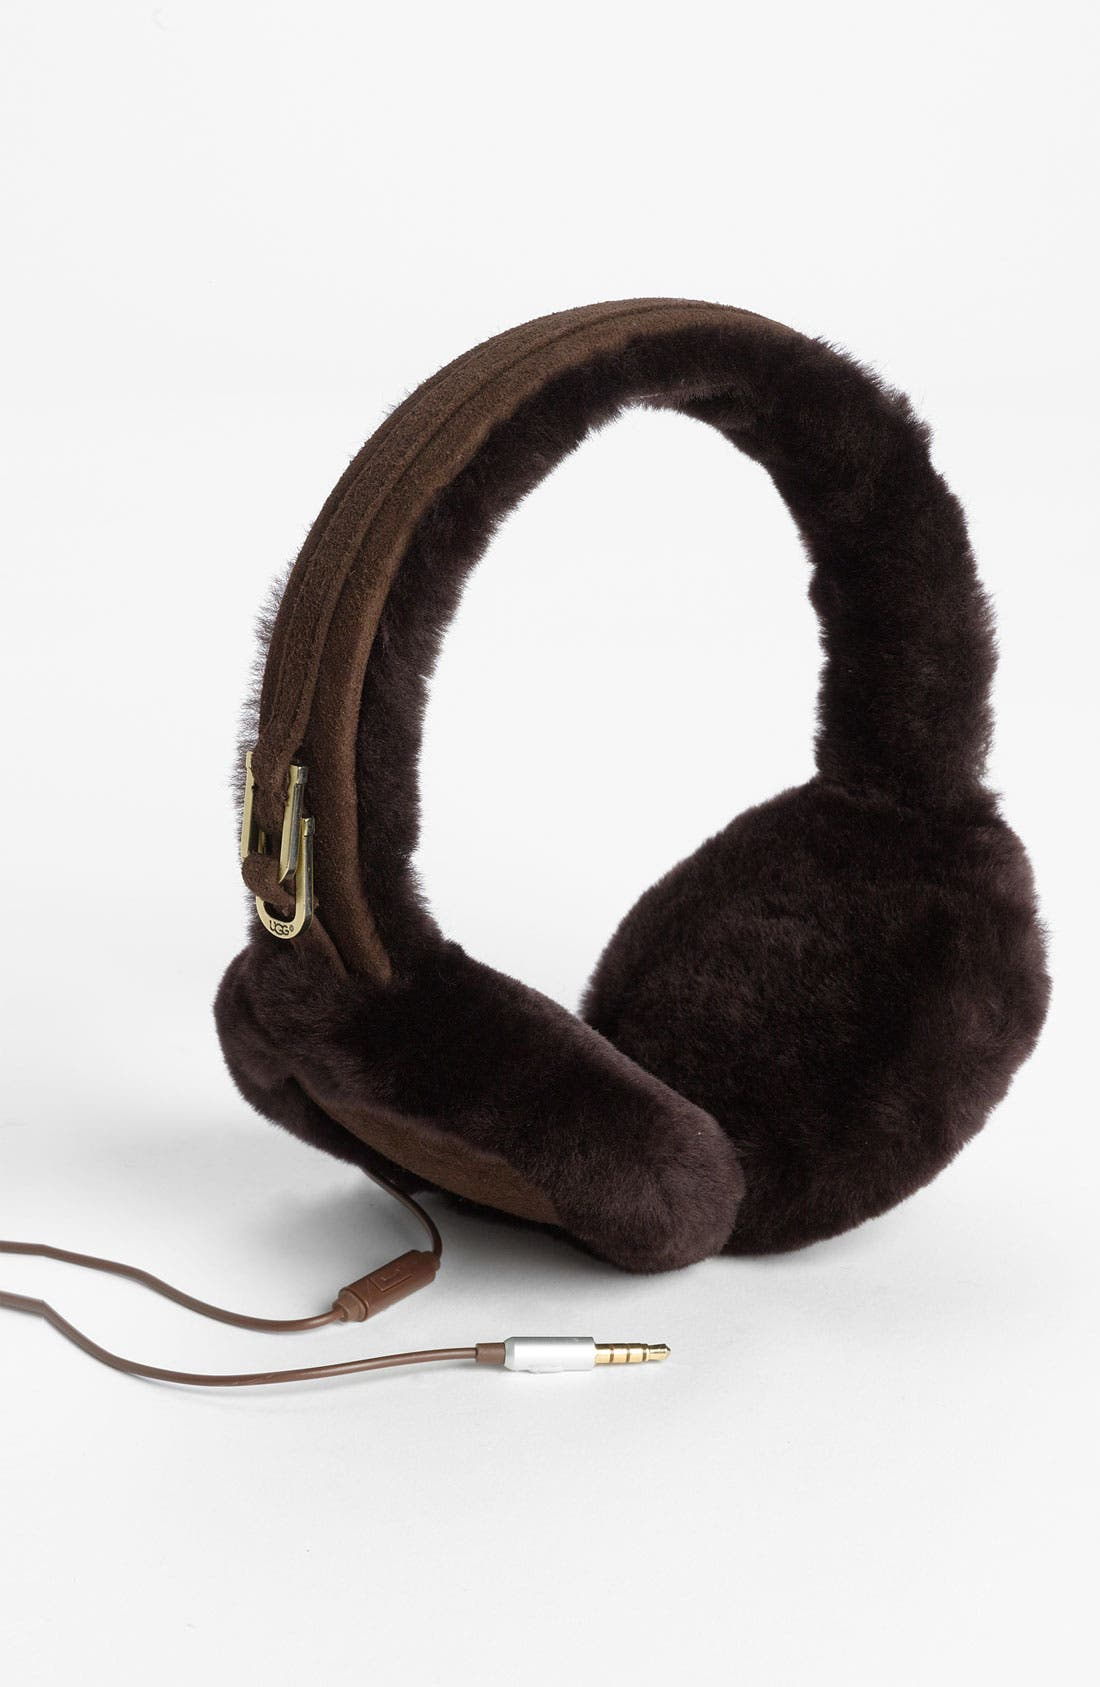 Australia Leather & Shearling Tech Earmuffs,                         Main,                         color, Chocolate